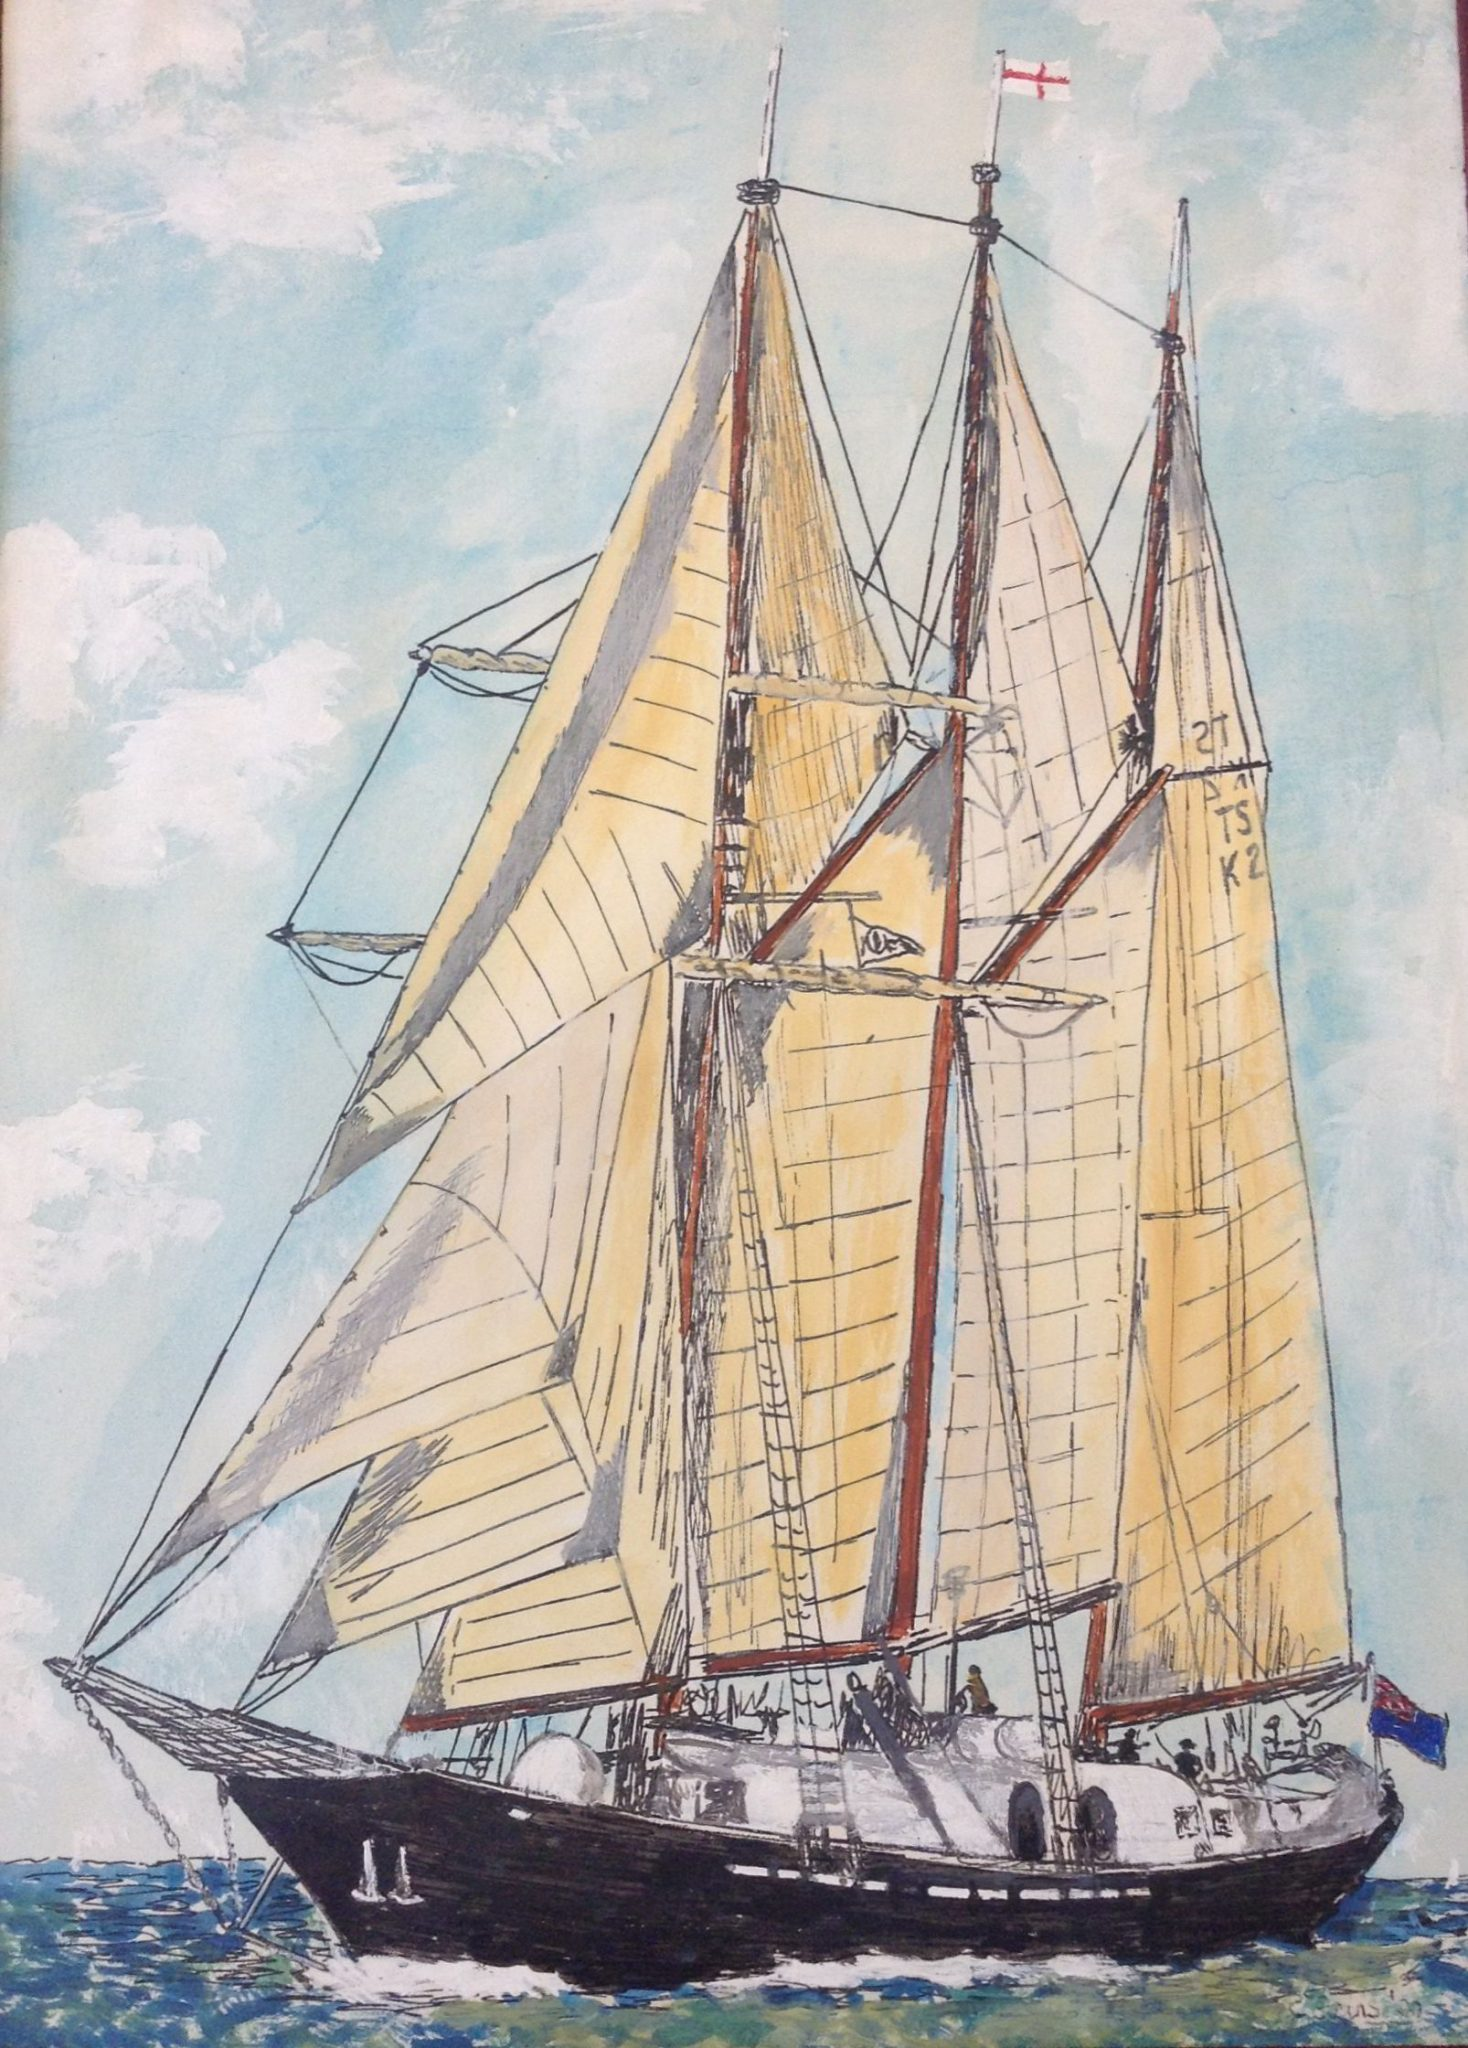 A watercolour painting of a sailing ship